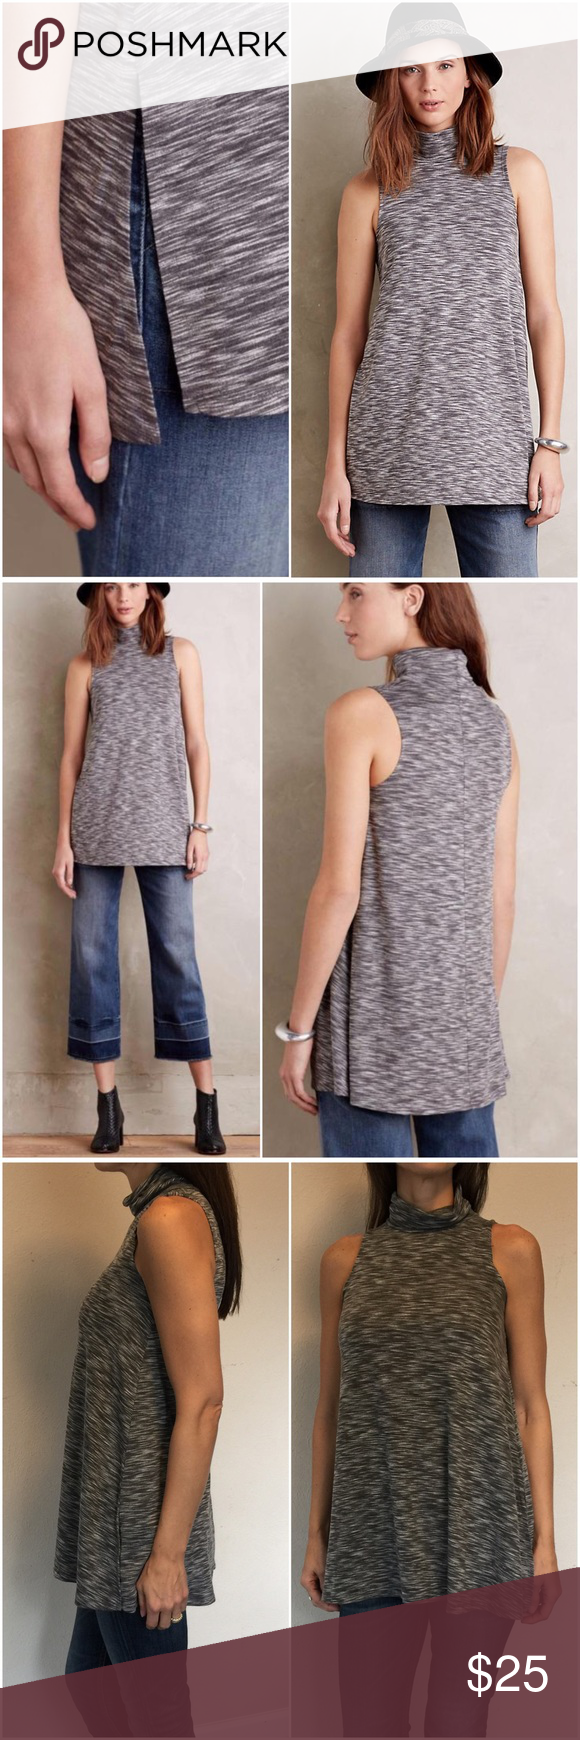 25e808f37b5 Anthropologie Postmark Slit Tunic Tank Anthropologie by Postmark Slit  Turtleneck Tunic Tank in heathered grey Rayon-spandex knit. Like new.